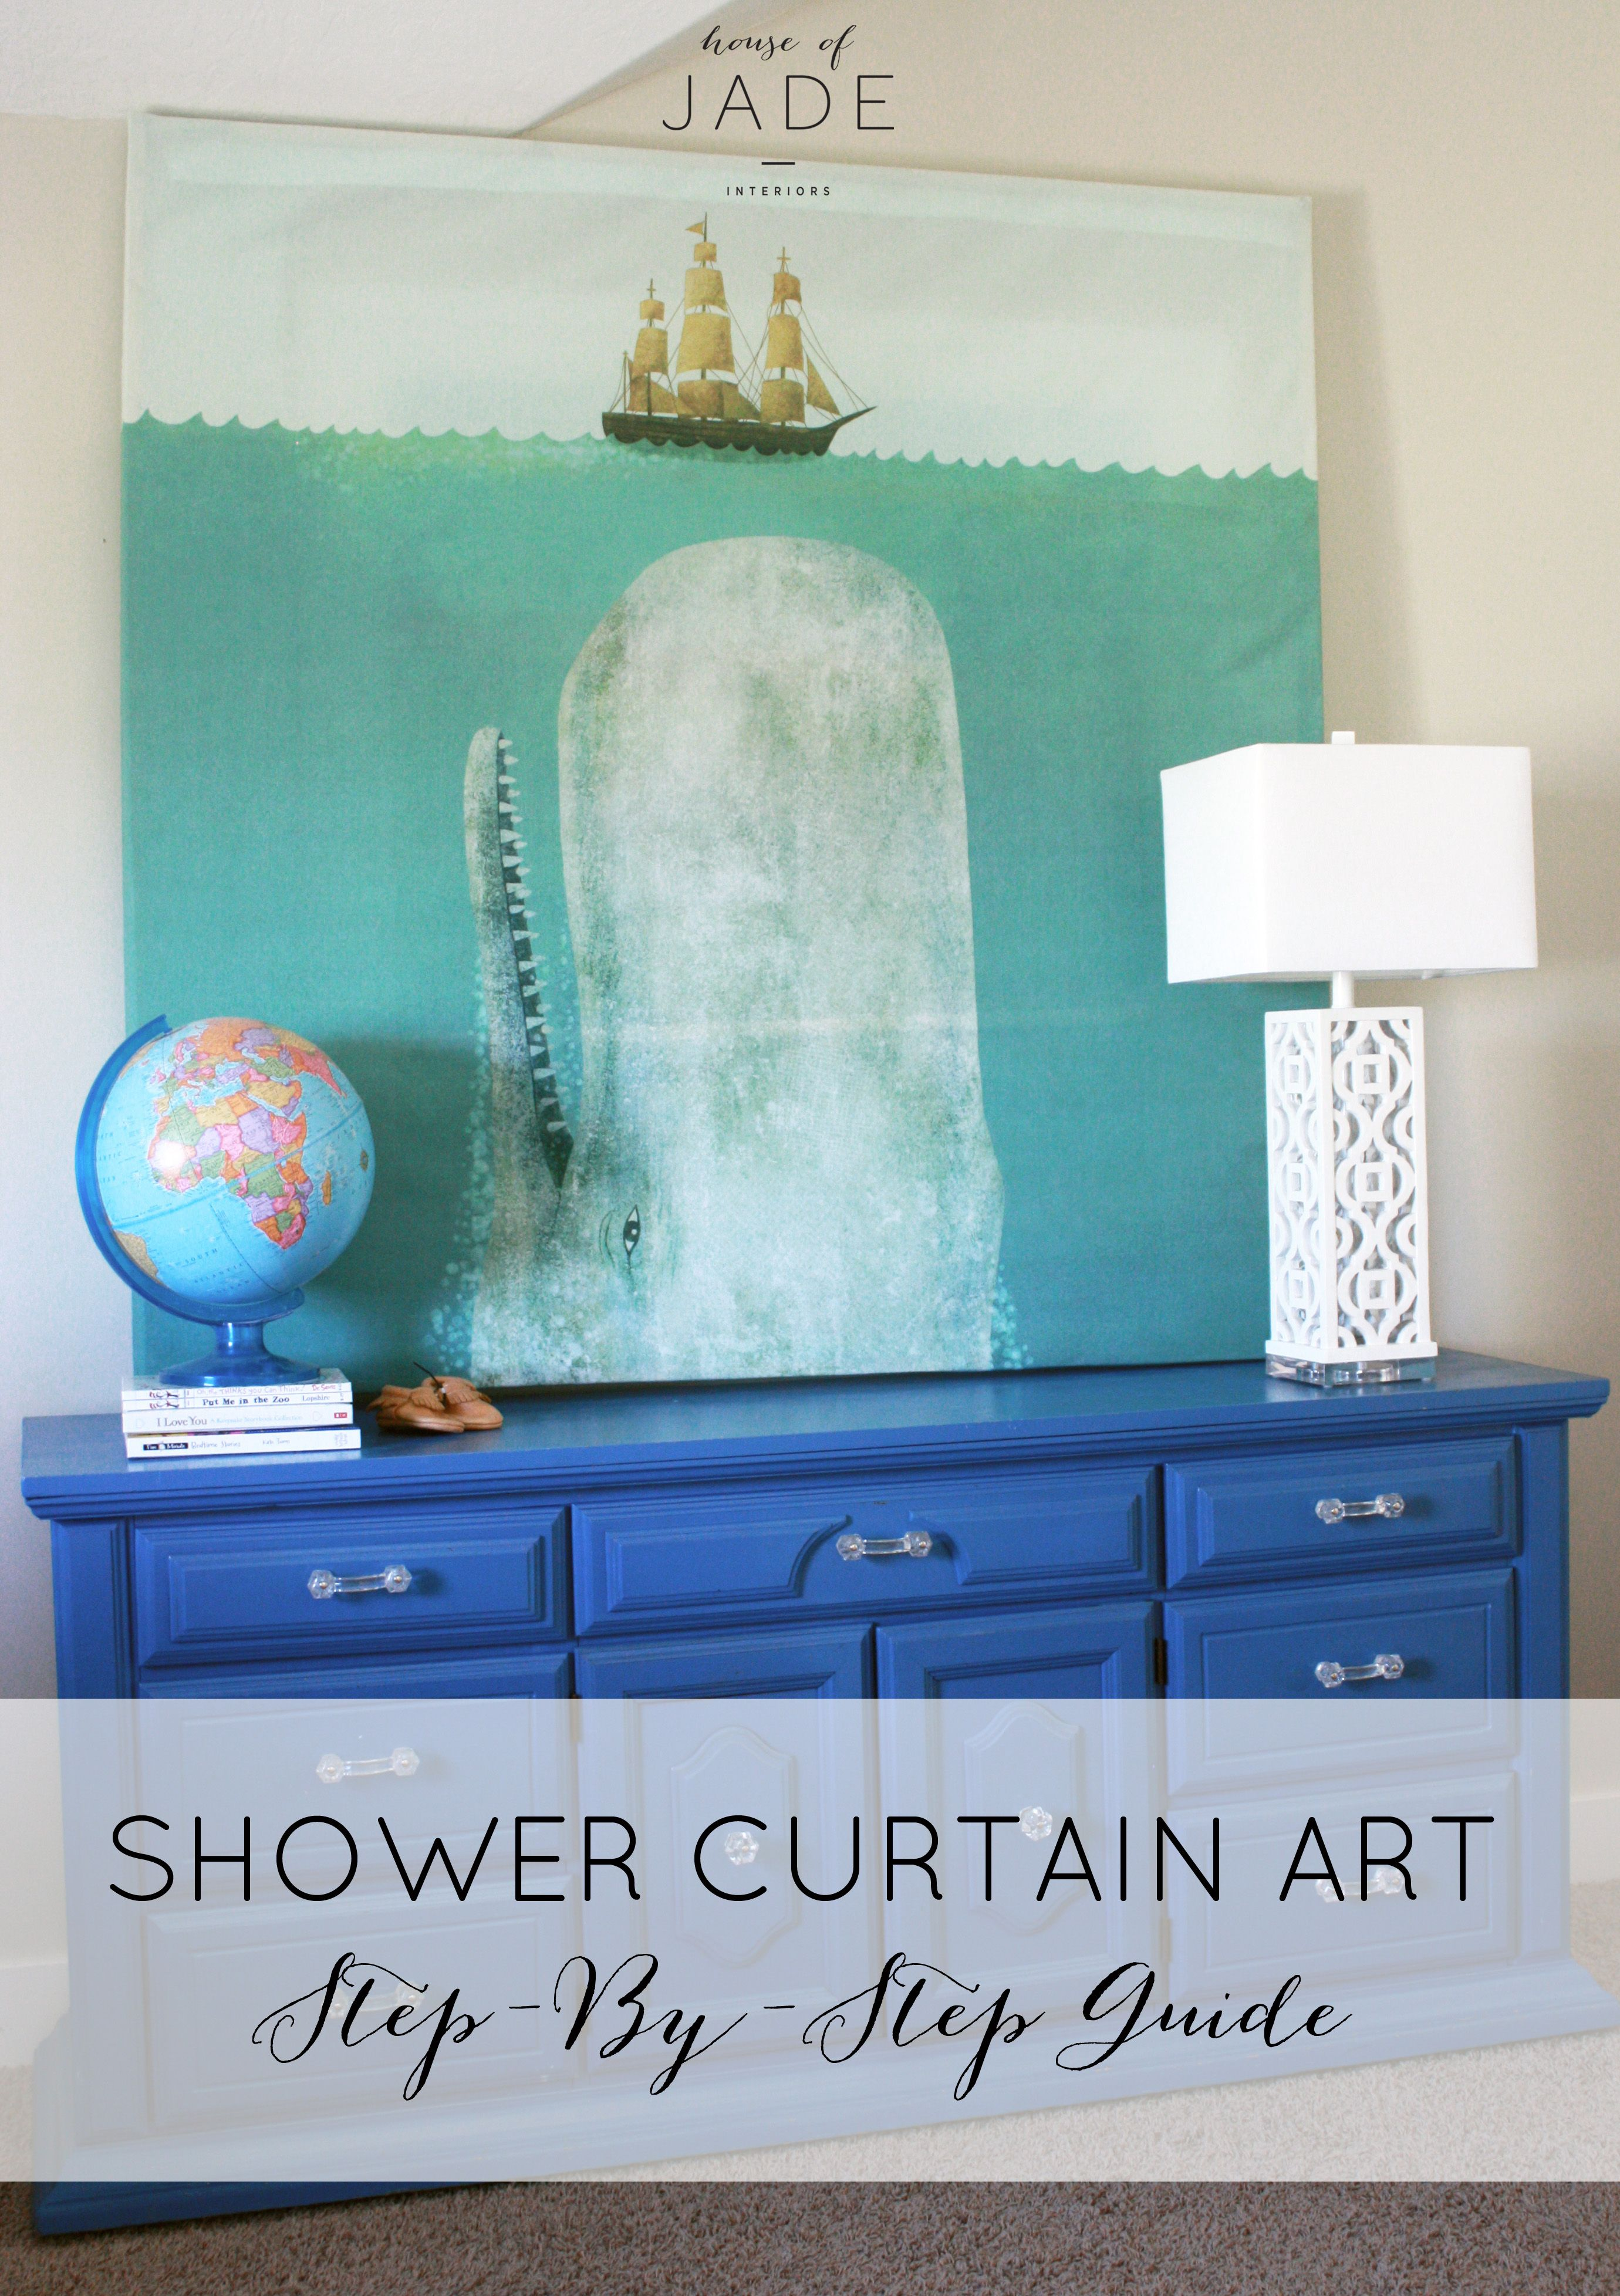 Diy painted shower curtain - Diy Shower Curtain Art3 Make It At Home Pinterest Diy Shower